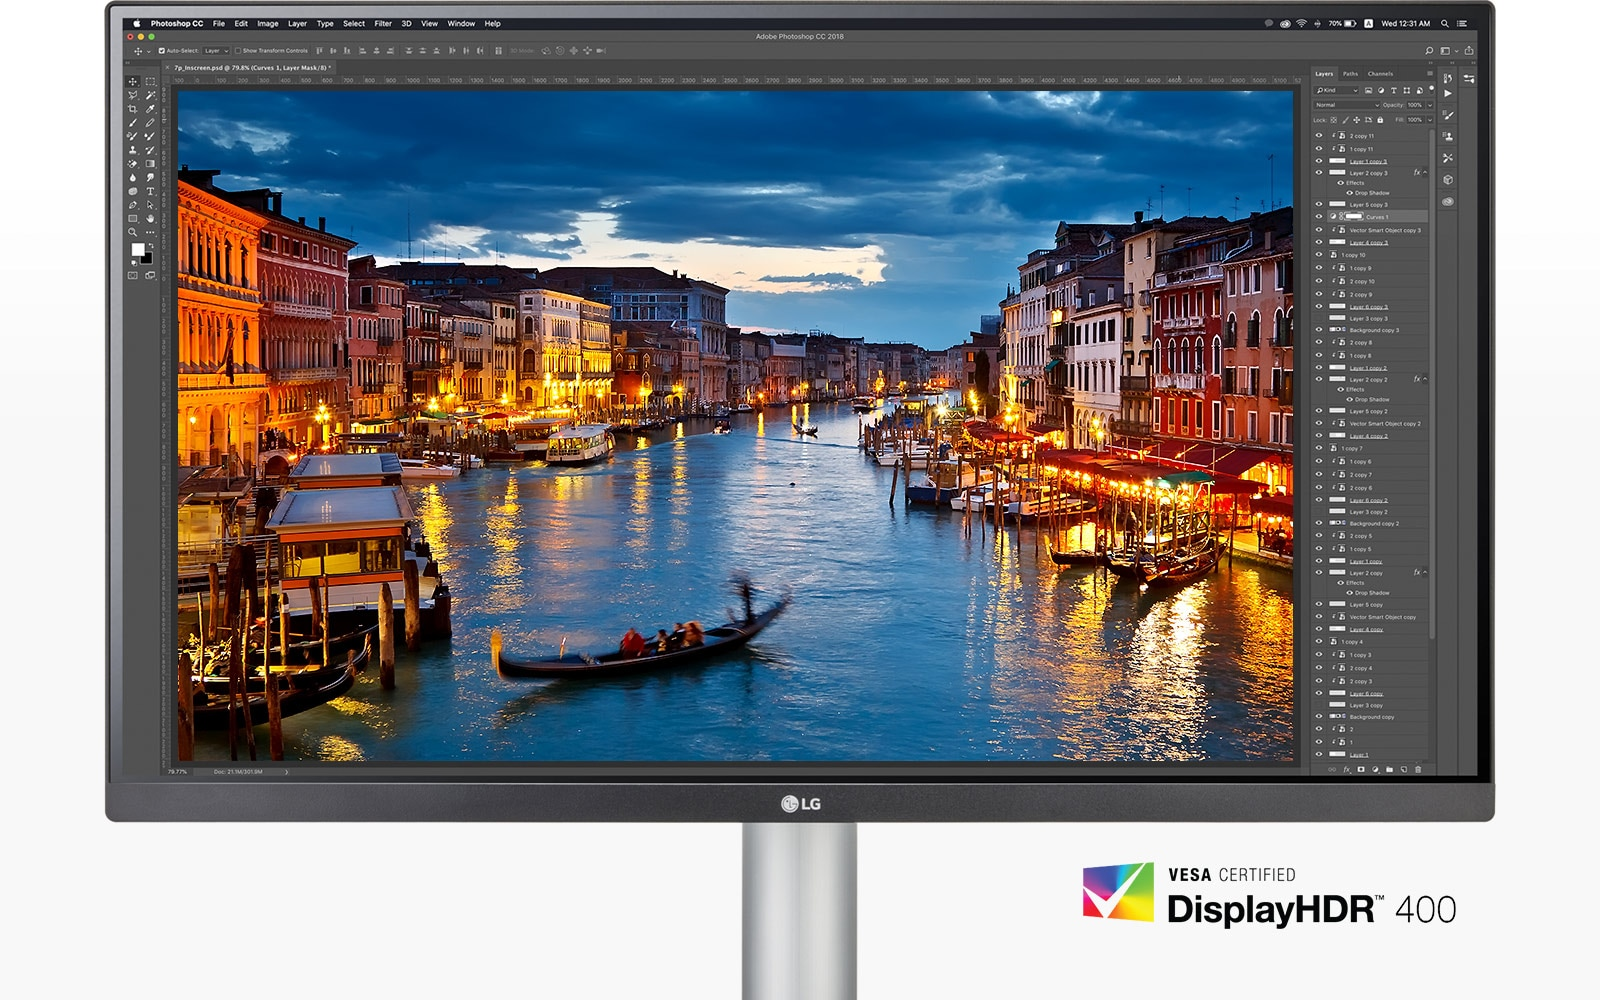 The monitor with VESA DisplayHDR™ 400 enabling dramatic visual immersion